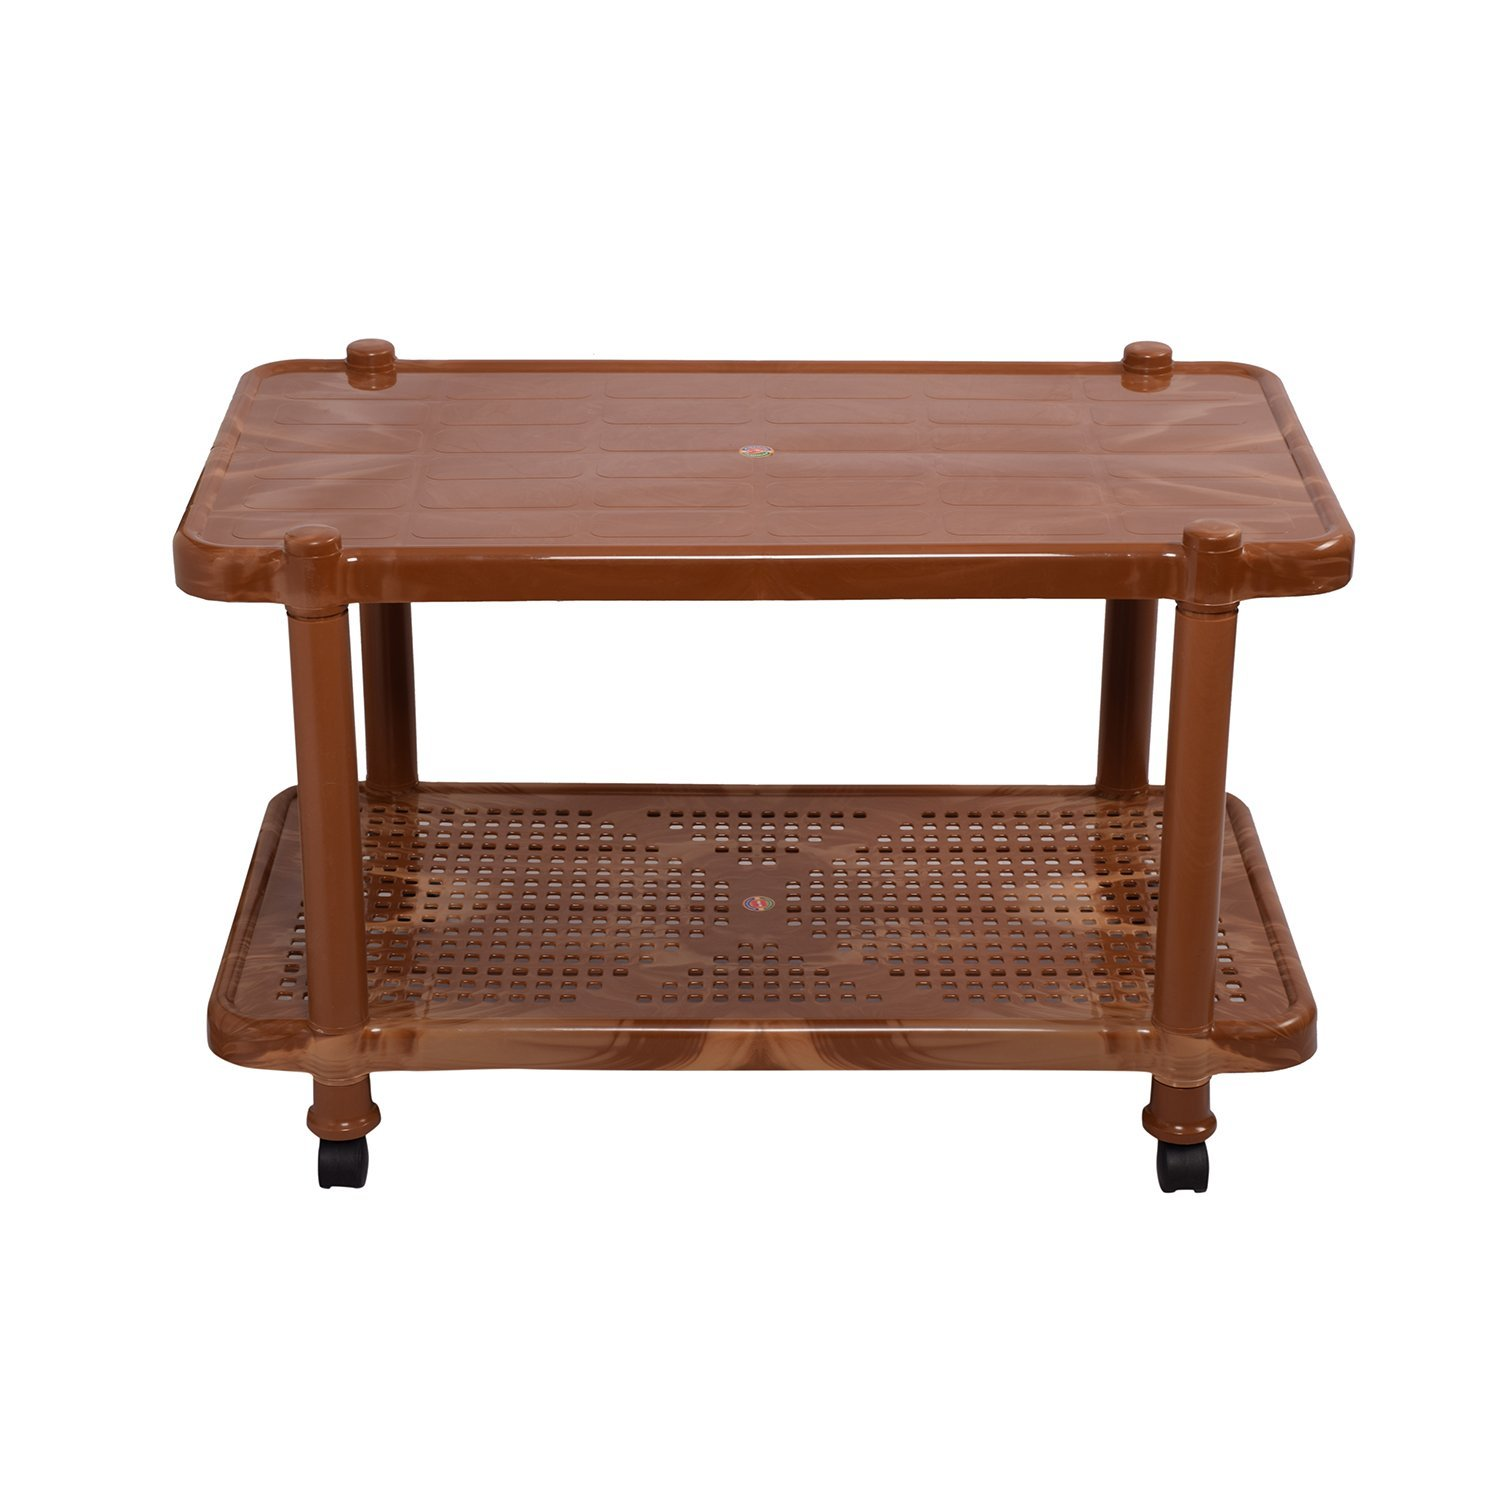 Lovely small size dining table online india light of dining room Coffee tables online